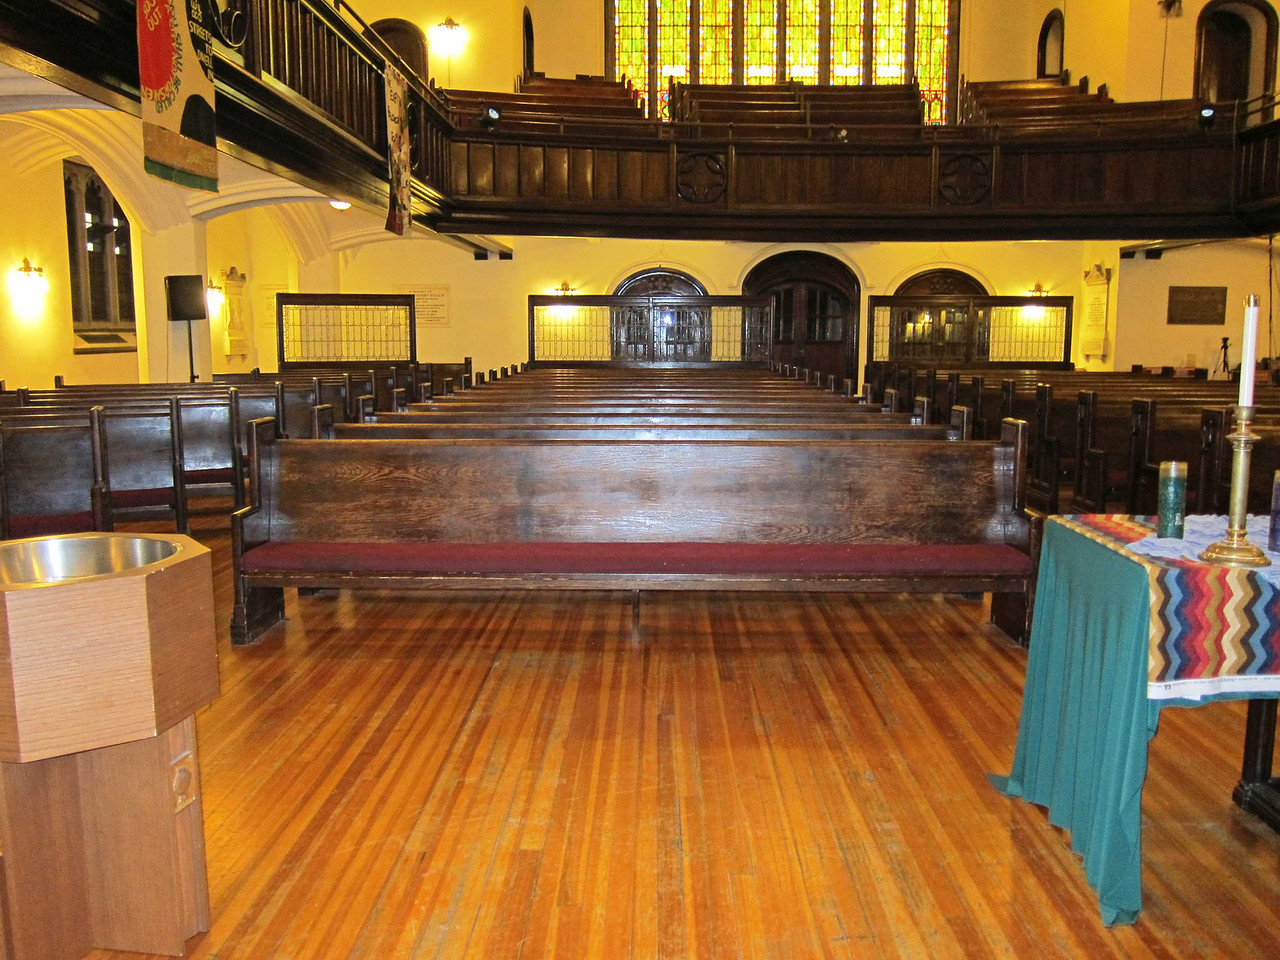 Broadway Presbyterian Church_2013-10-04_4327_Sanctuary seen from altar